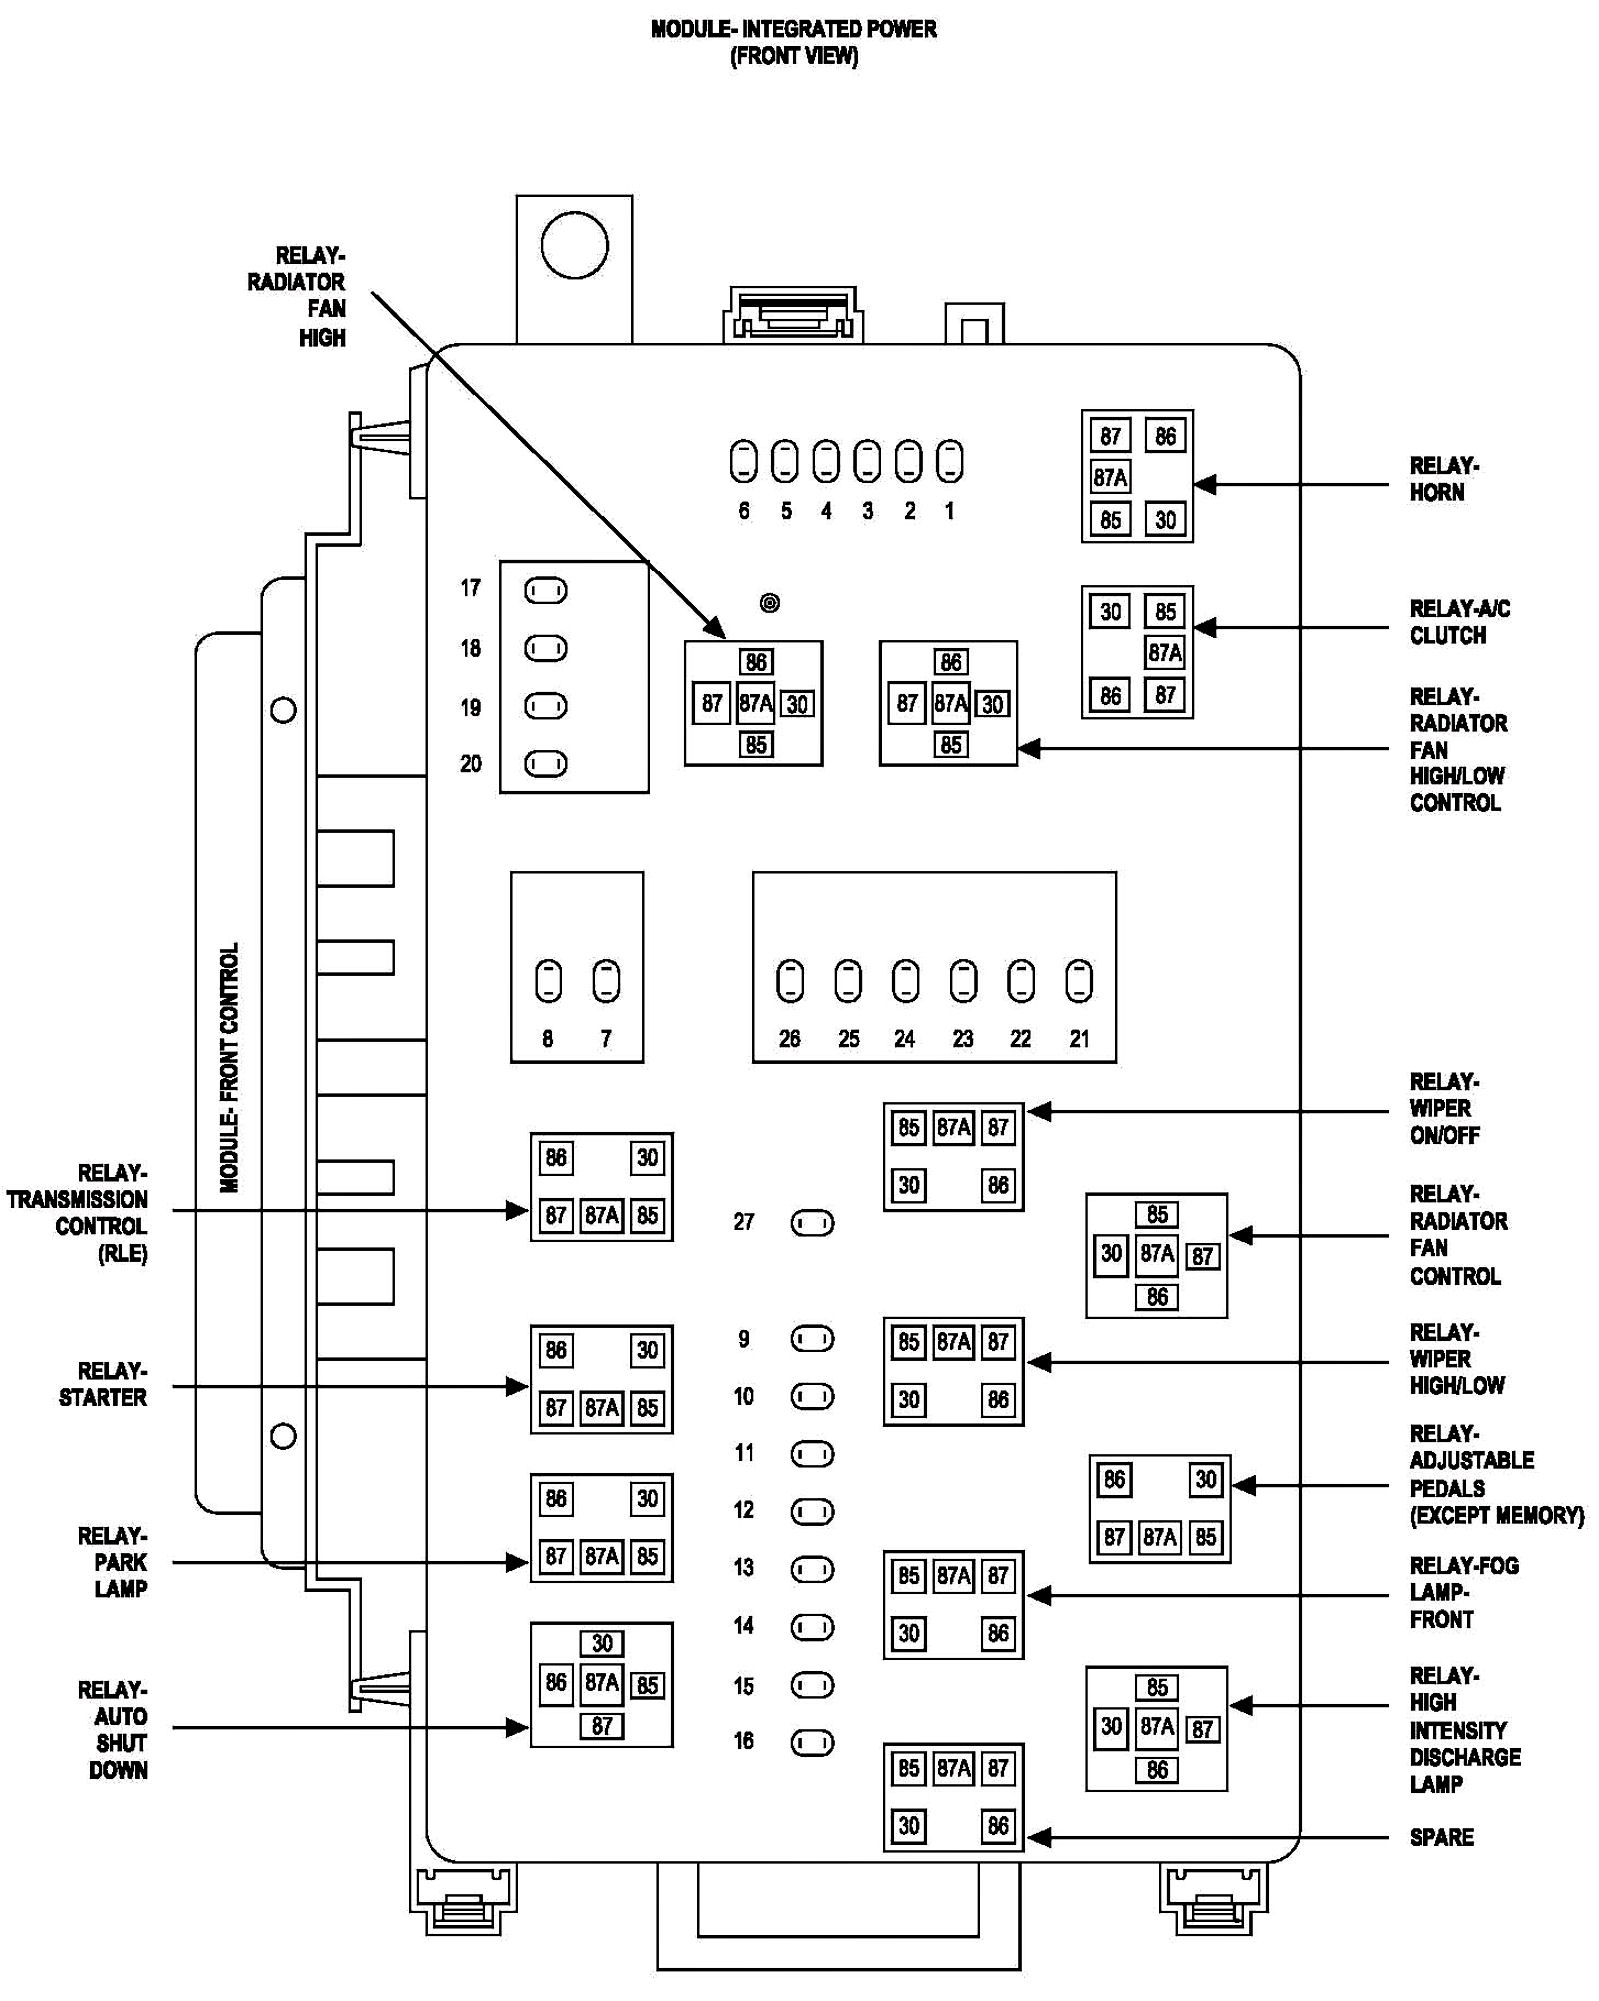 2007 chrysler sebring wiring diagram Download-2007 Chrysler Sebring Wiring Diagram 2007 Chrysler Sebring Fuse Box Diagram Awesome Iec Relay Symbol 13-l